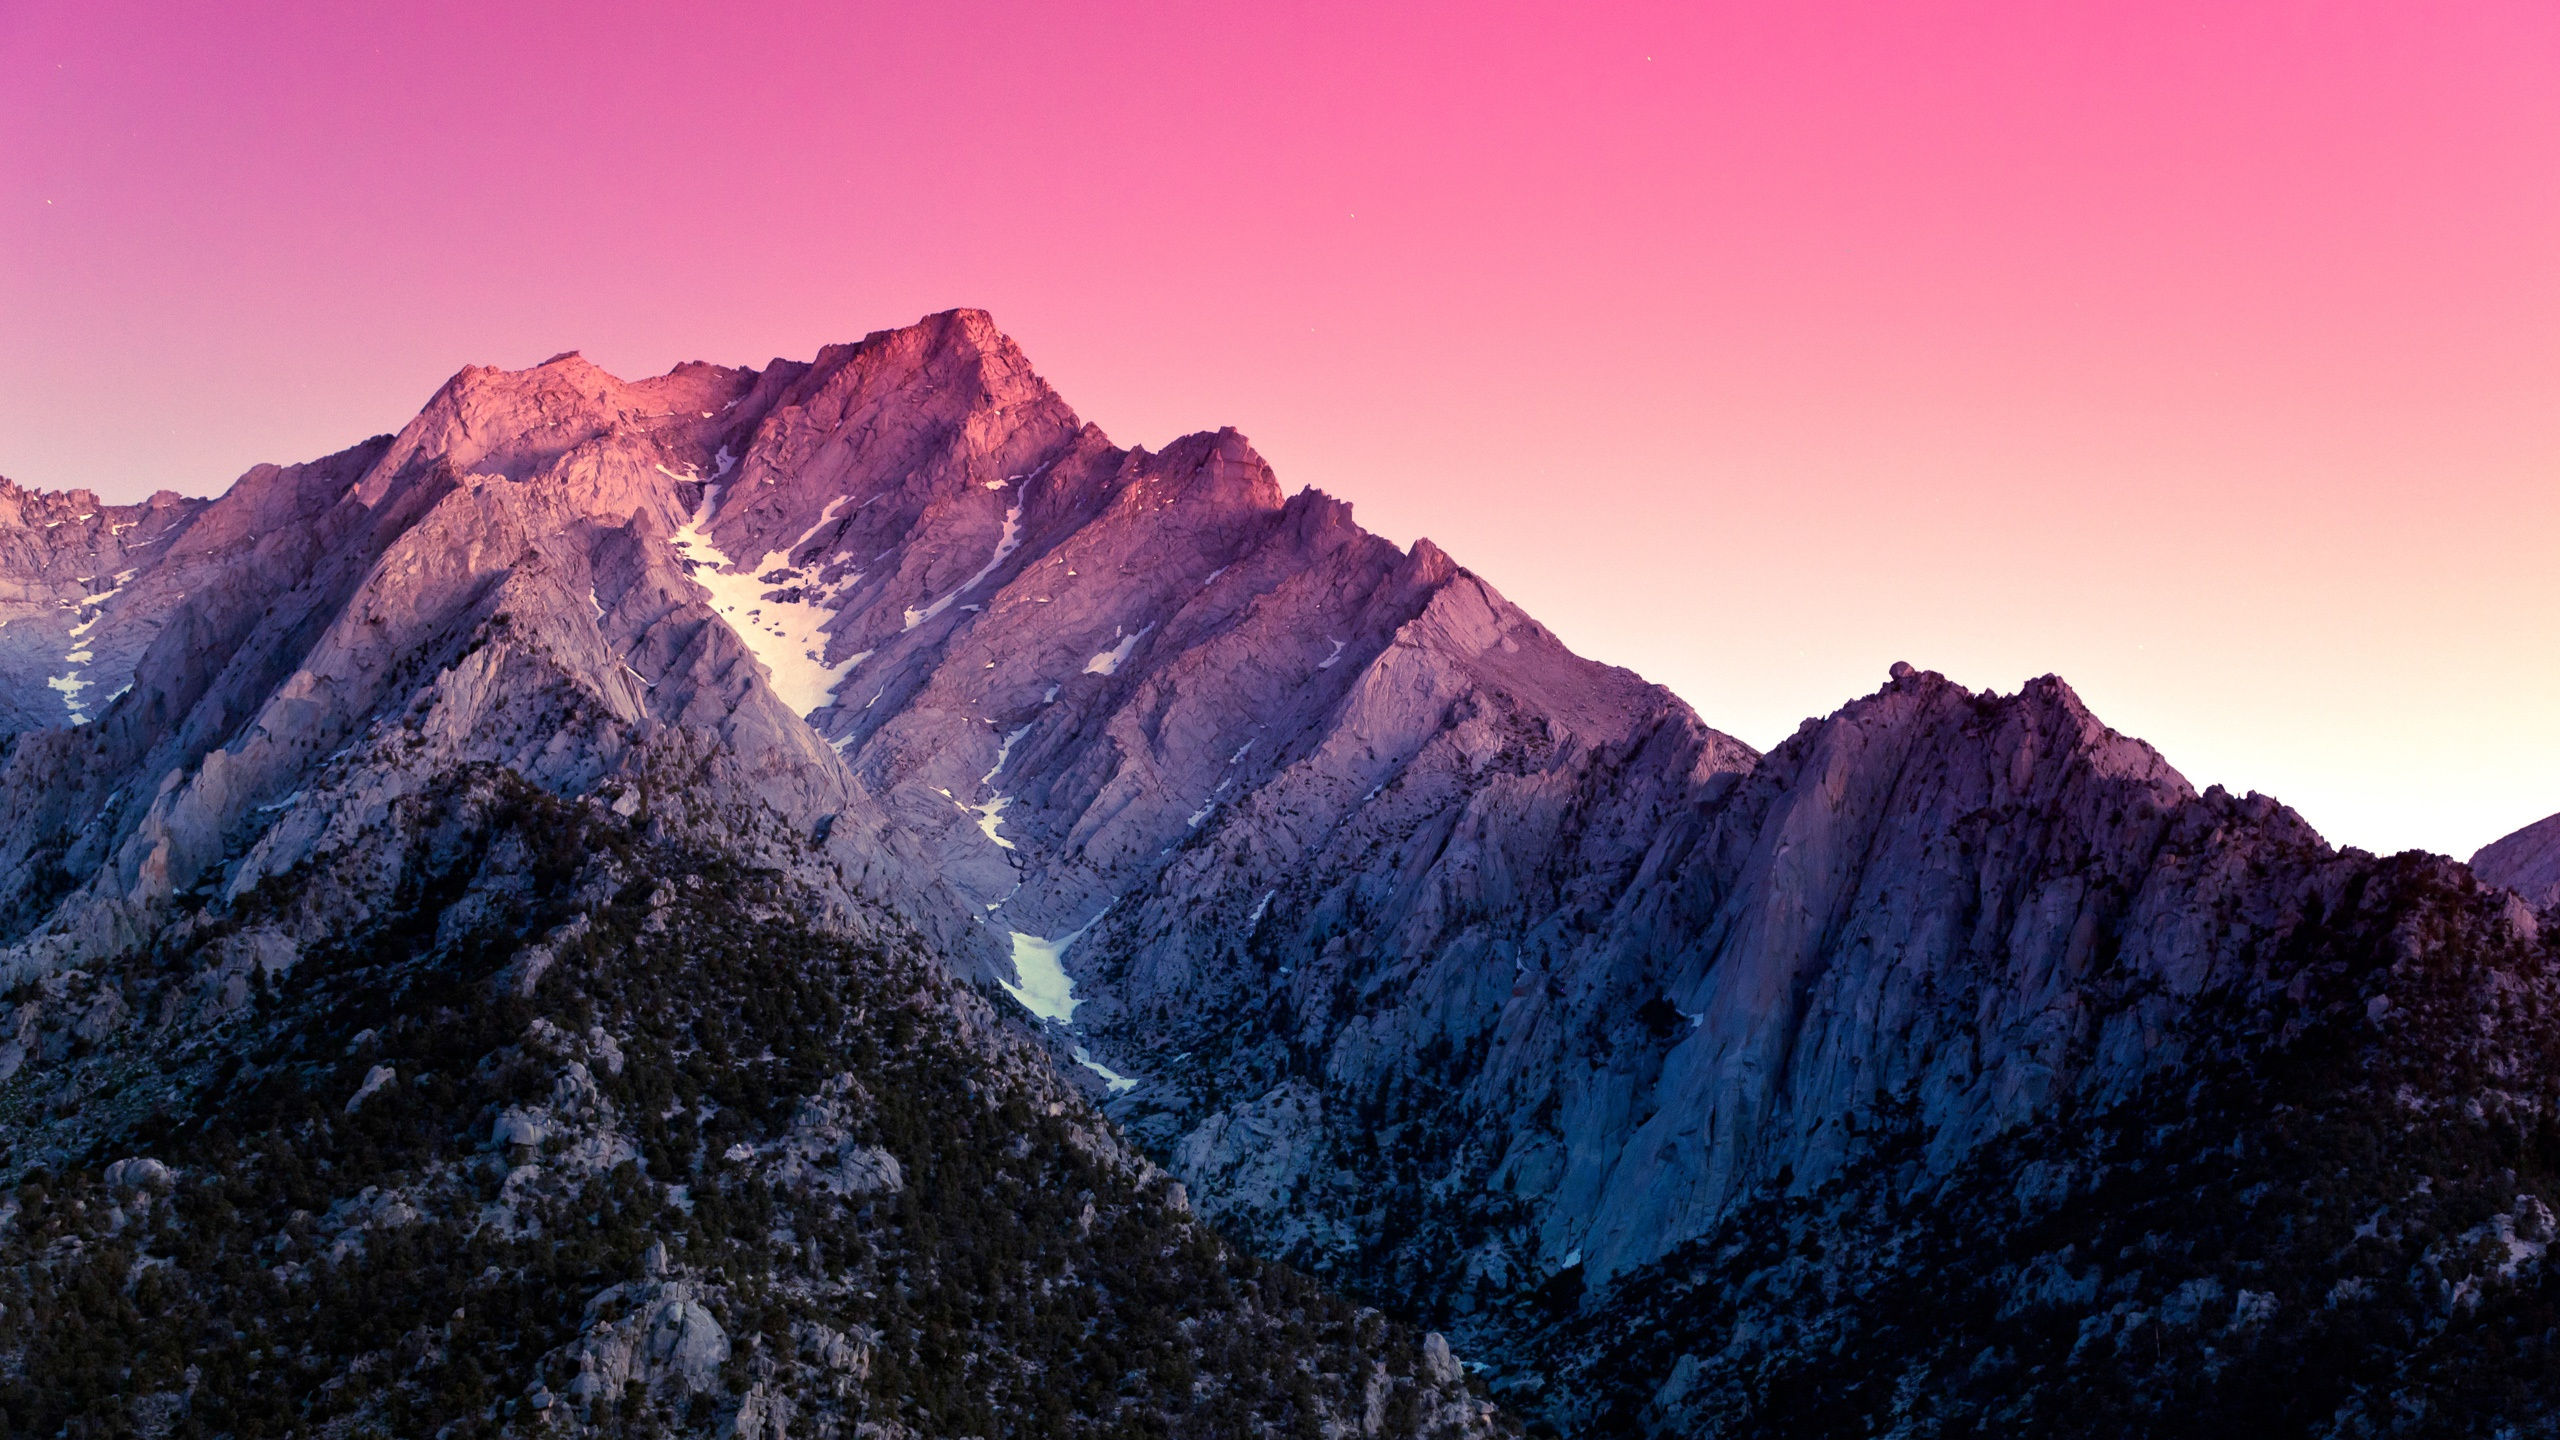 pink snow mountain wallpaper - photo #6